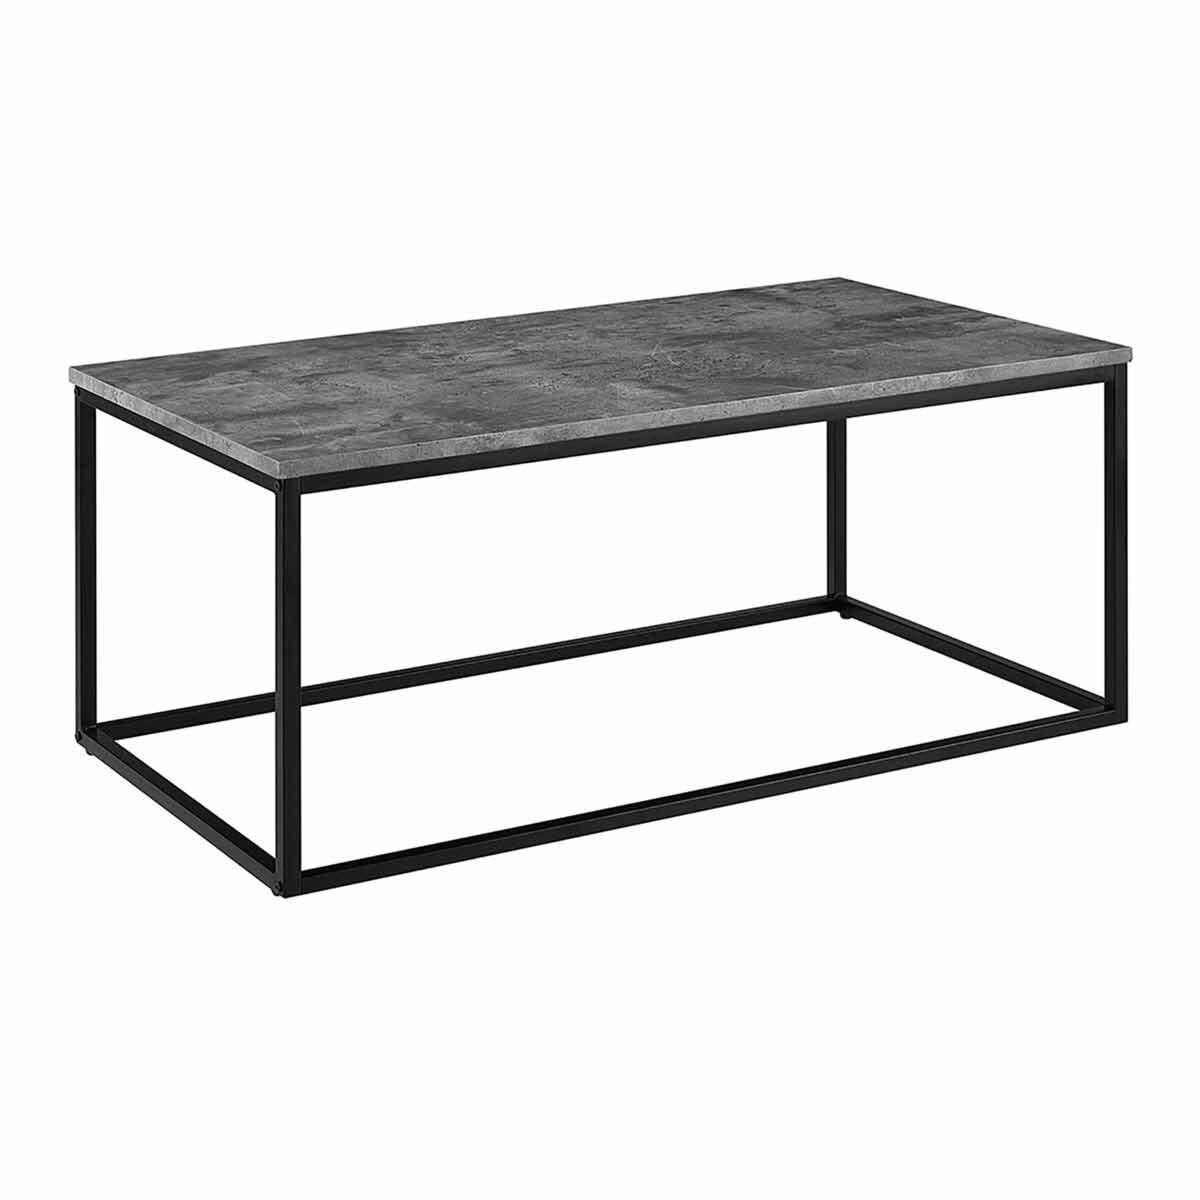 Girona Industrial Coffee Table